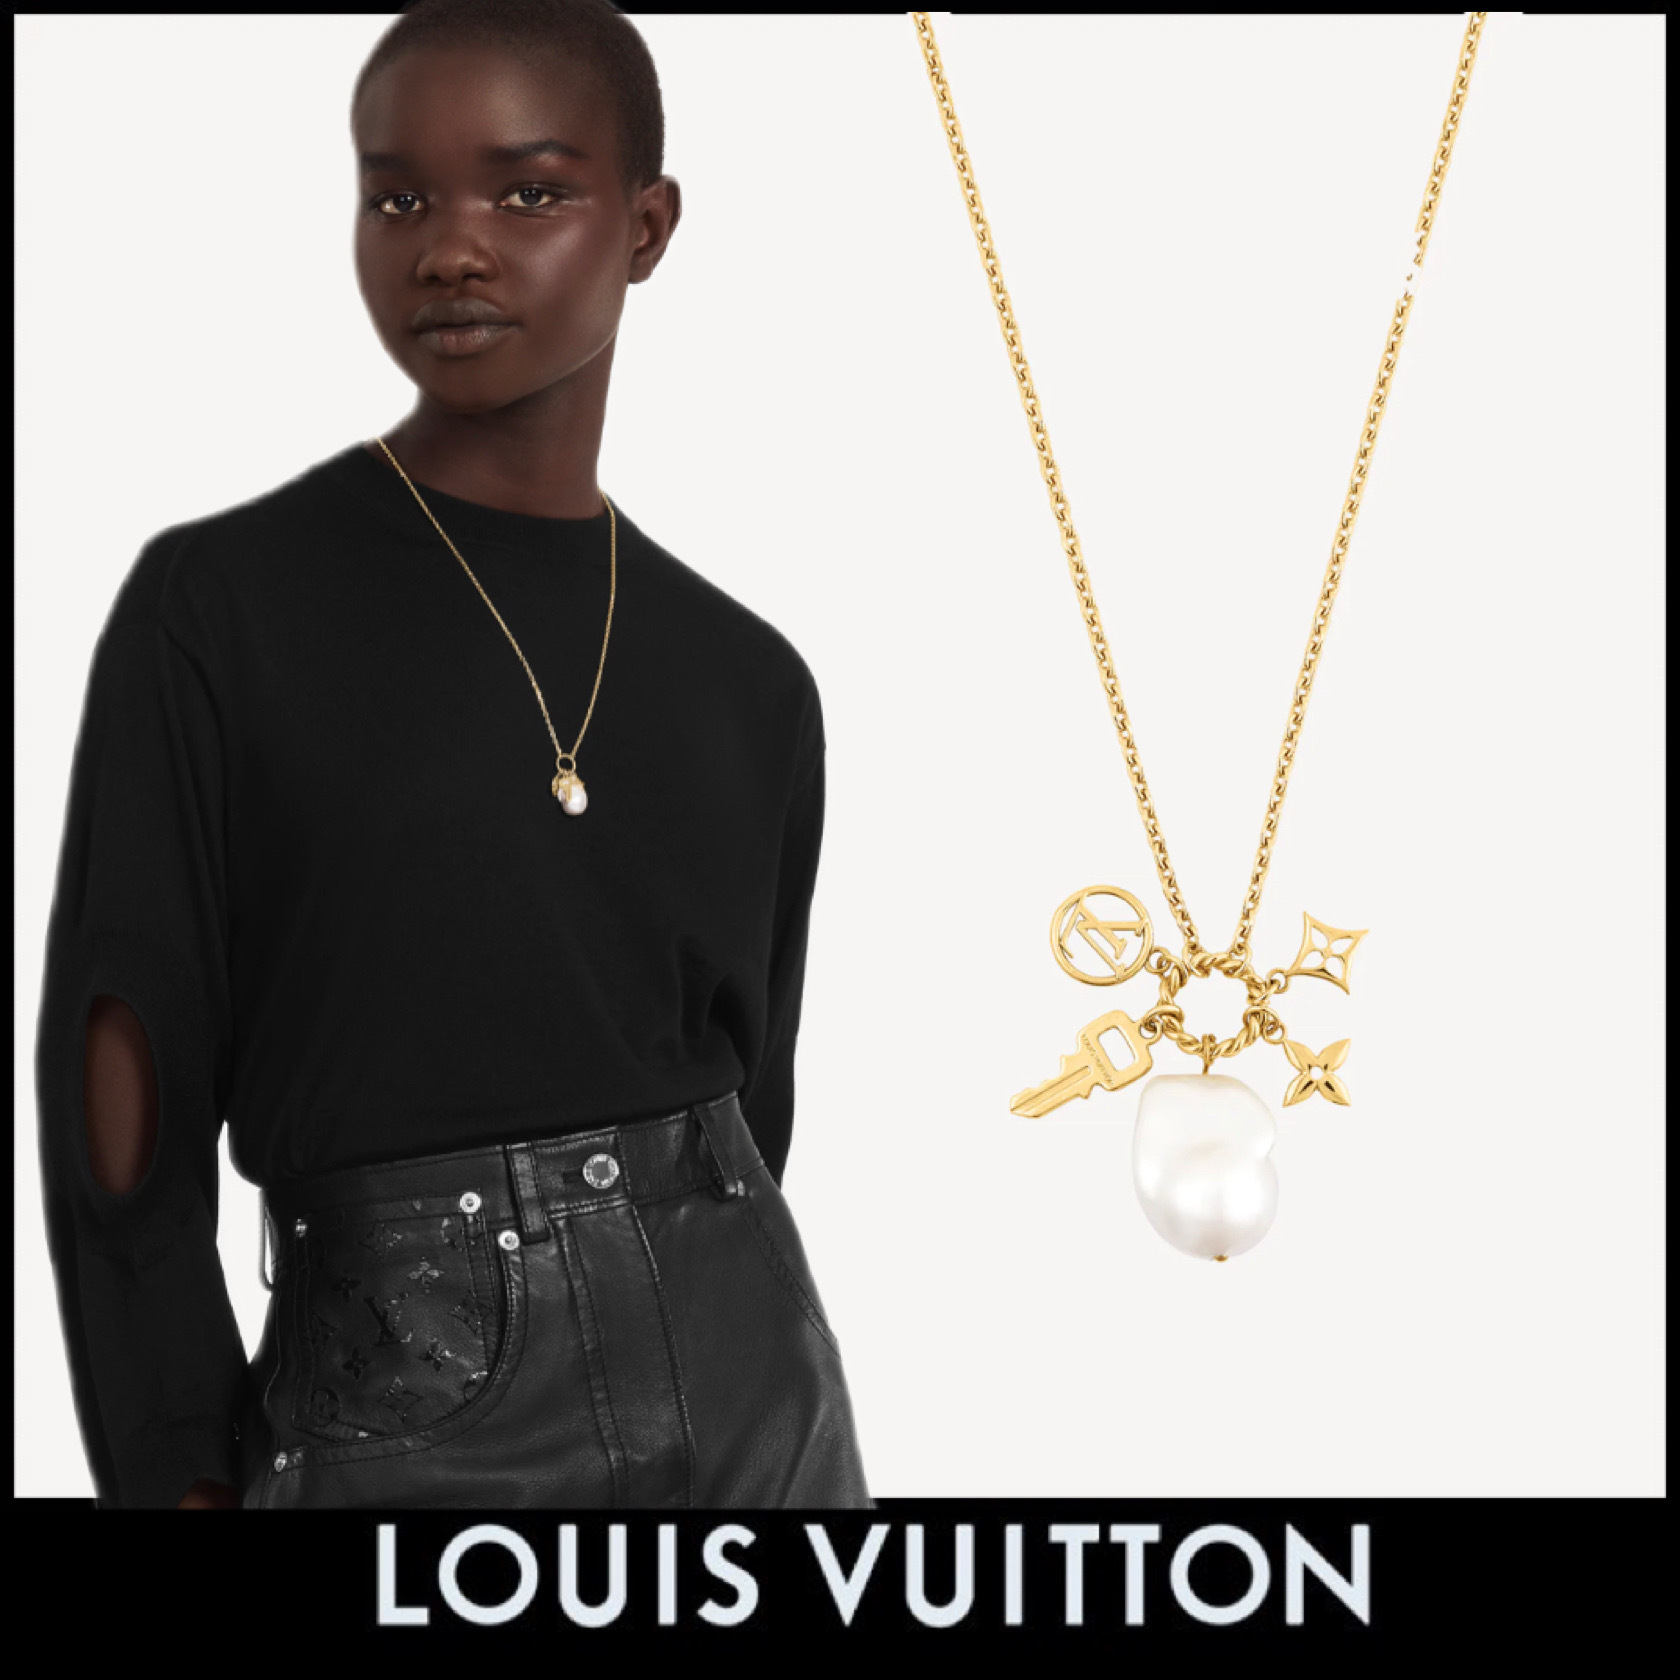 21FW》LOUIS VUITTON/COLLIER TOGETHER マザーオブパール (Louis Vuitton/ネックレス・ペンダント) M00370